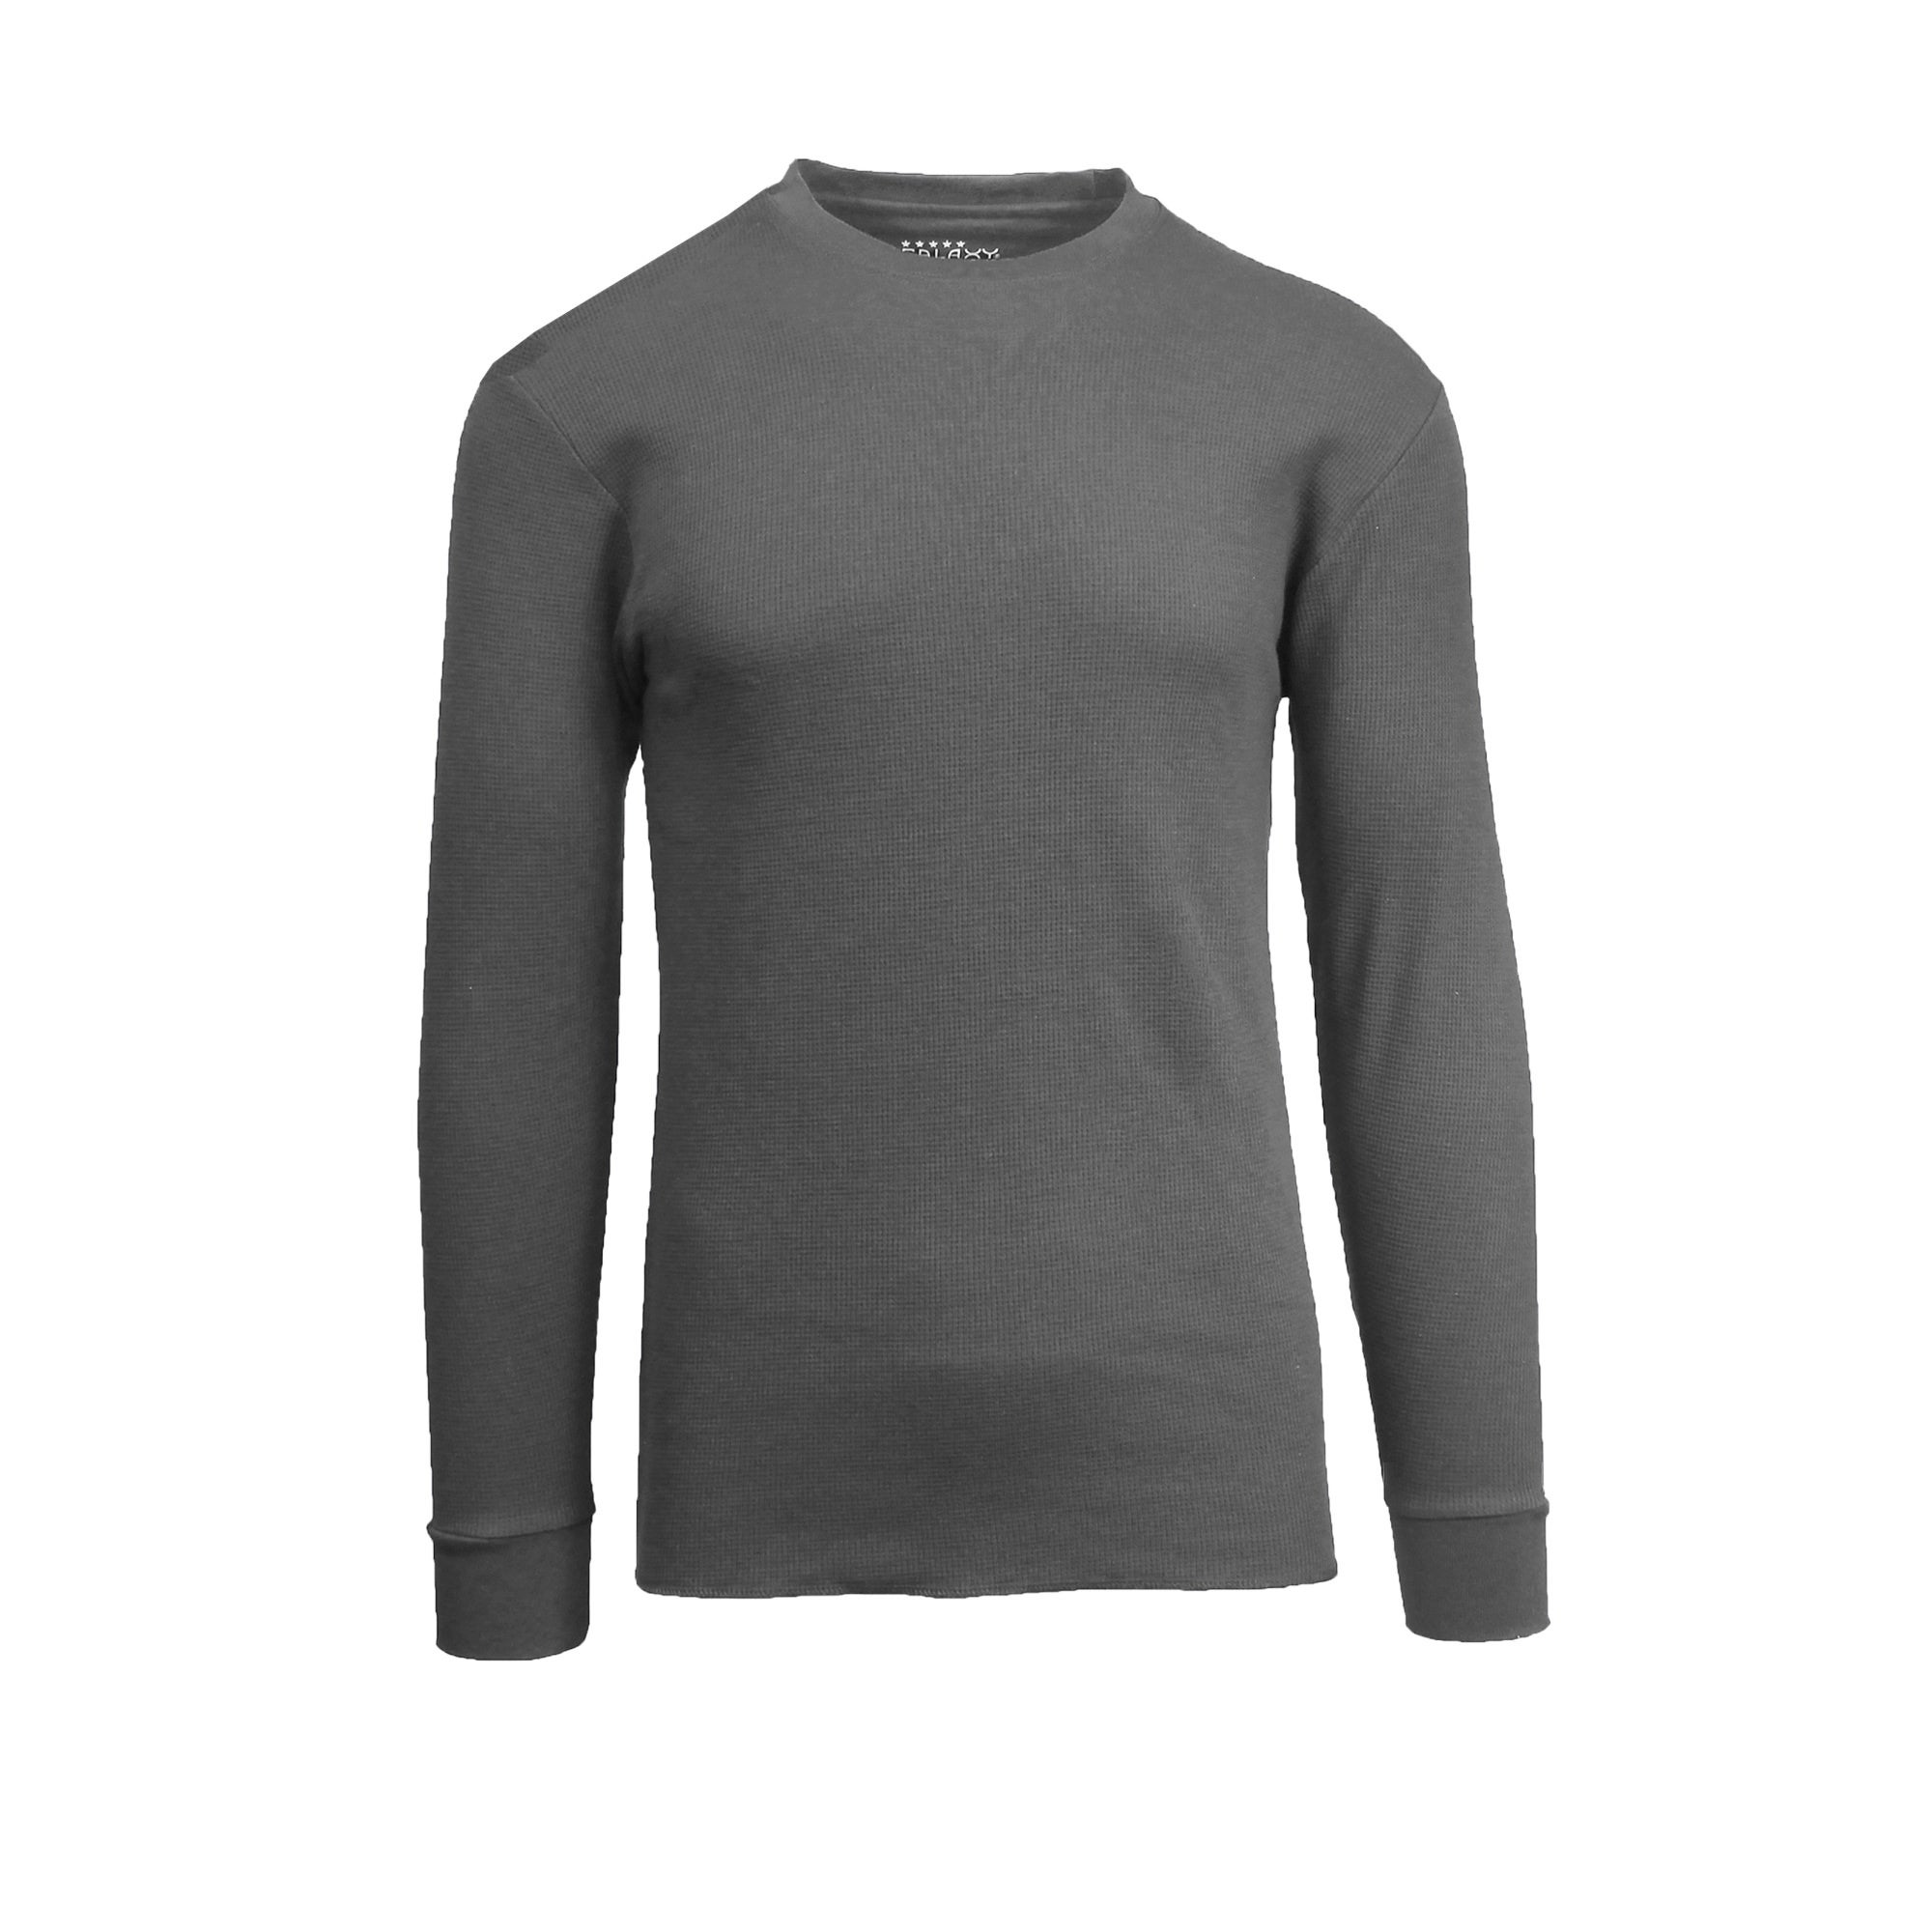 Men/'s Long Sleeve Waffle Thermal Shirt Tee Crew Neck BLACK